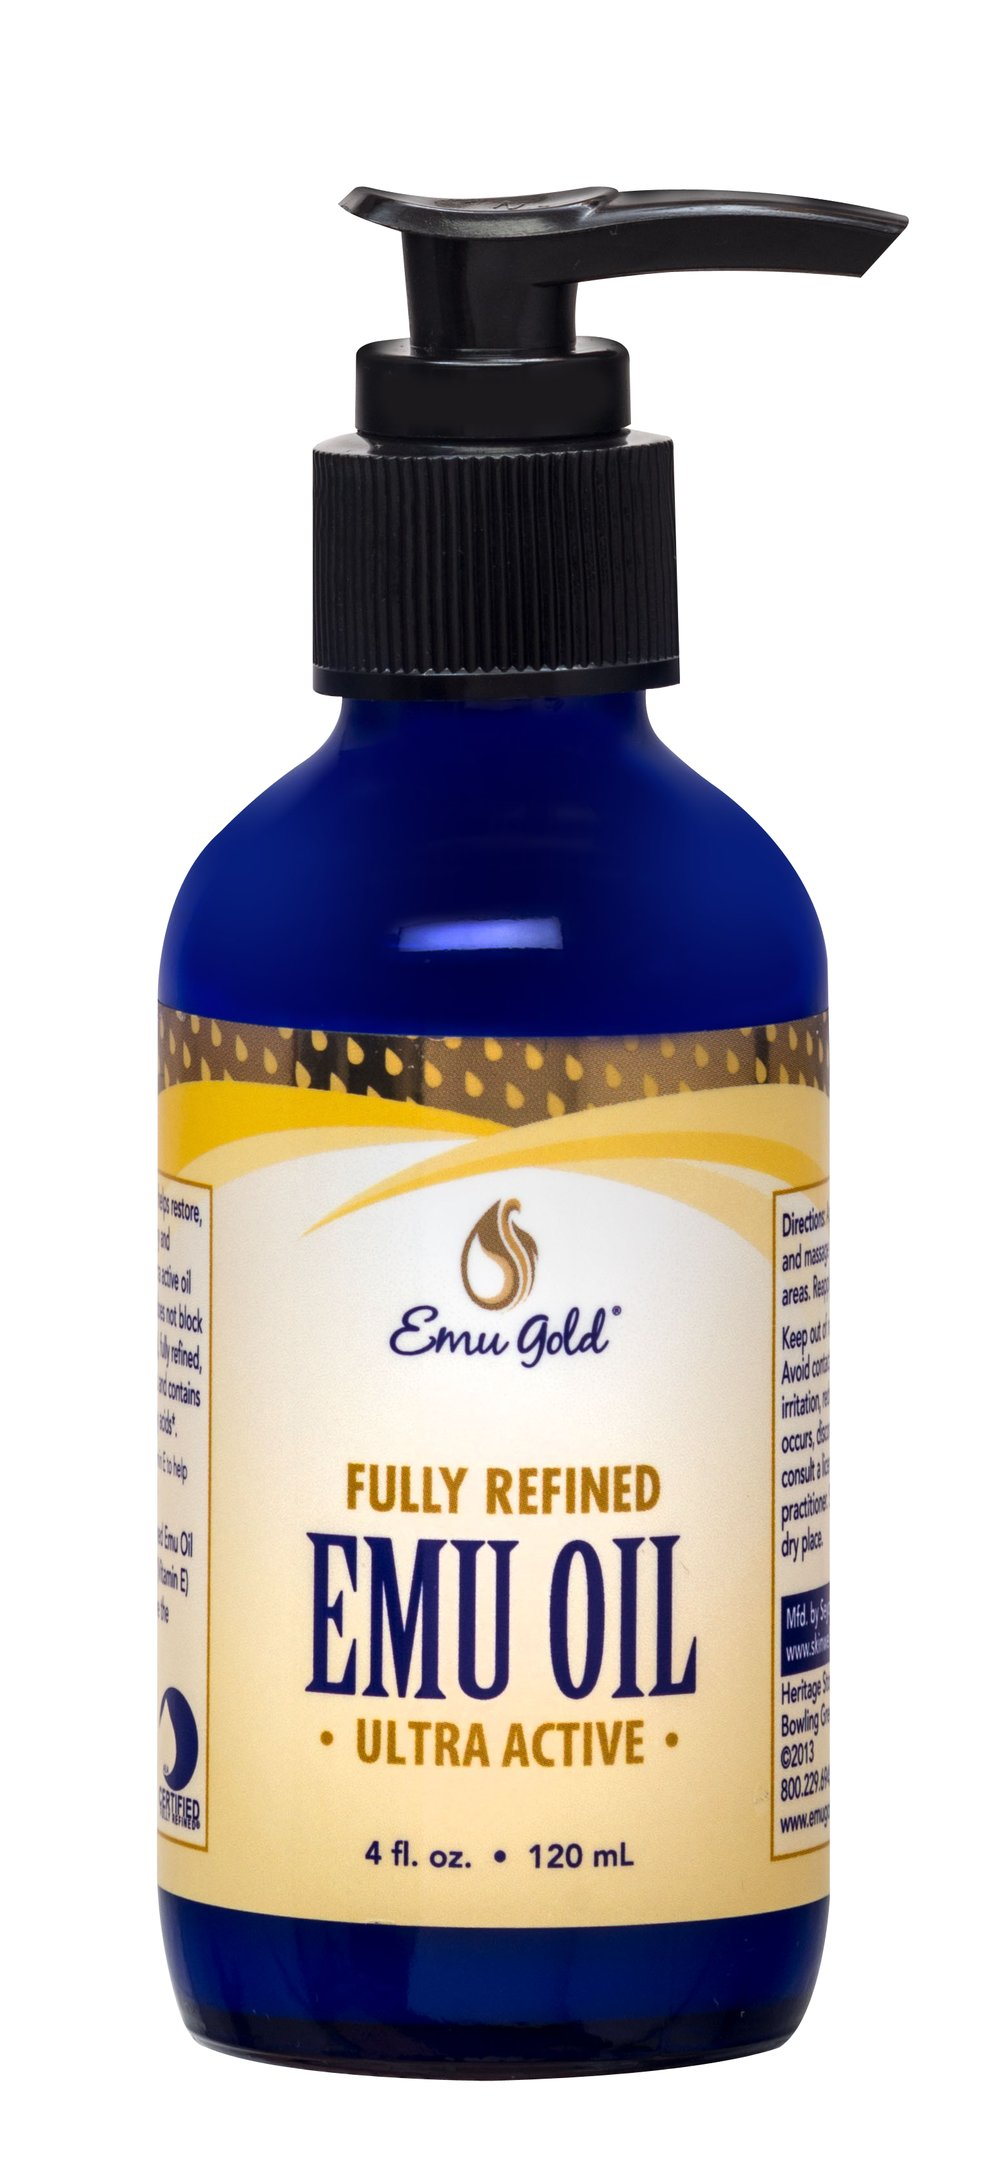 Emu Oil 100% Natural <p><b>From the Manufacturer's Label:</b></p>  <p>Emu Oil 100% 100% Natural is manufactured by Emu Gold®.</p> 4 oz Oil